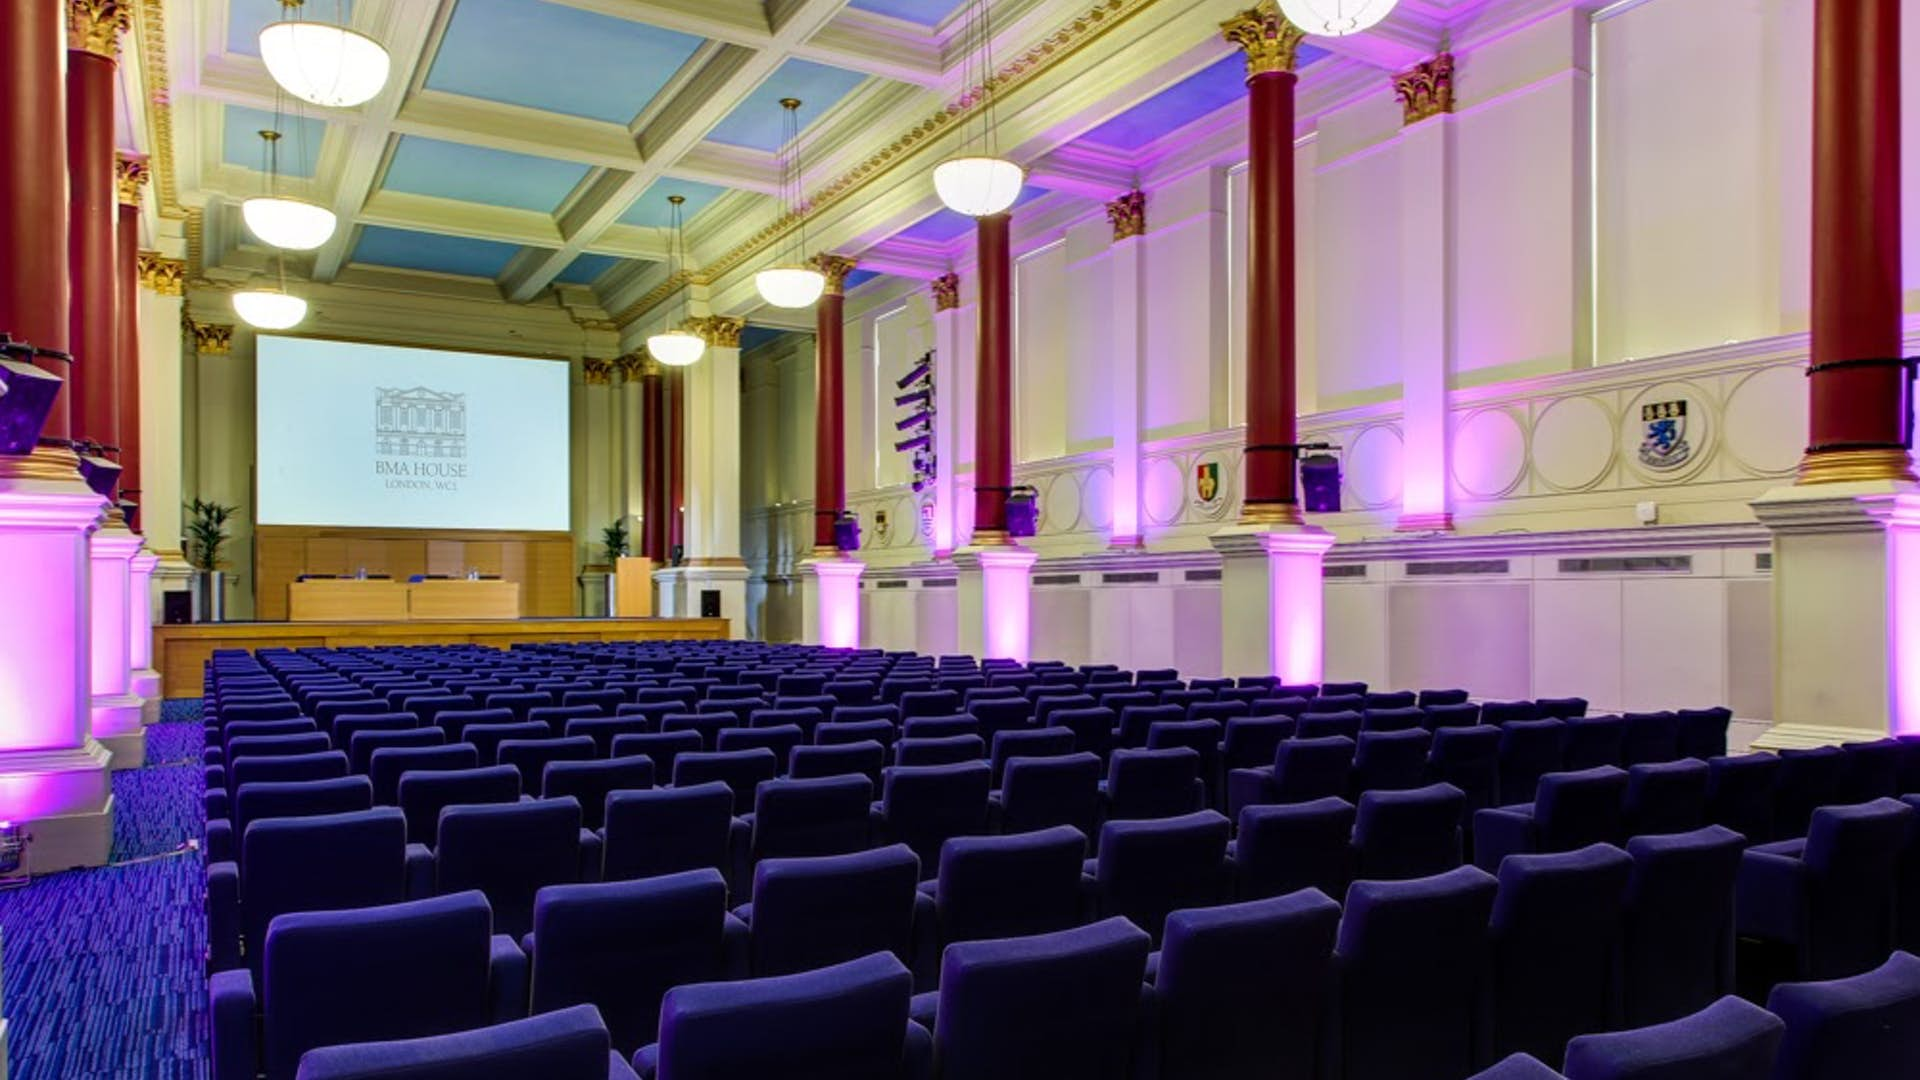 Conference set up at BMA house